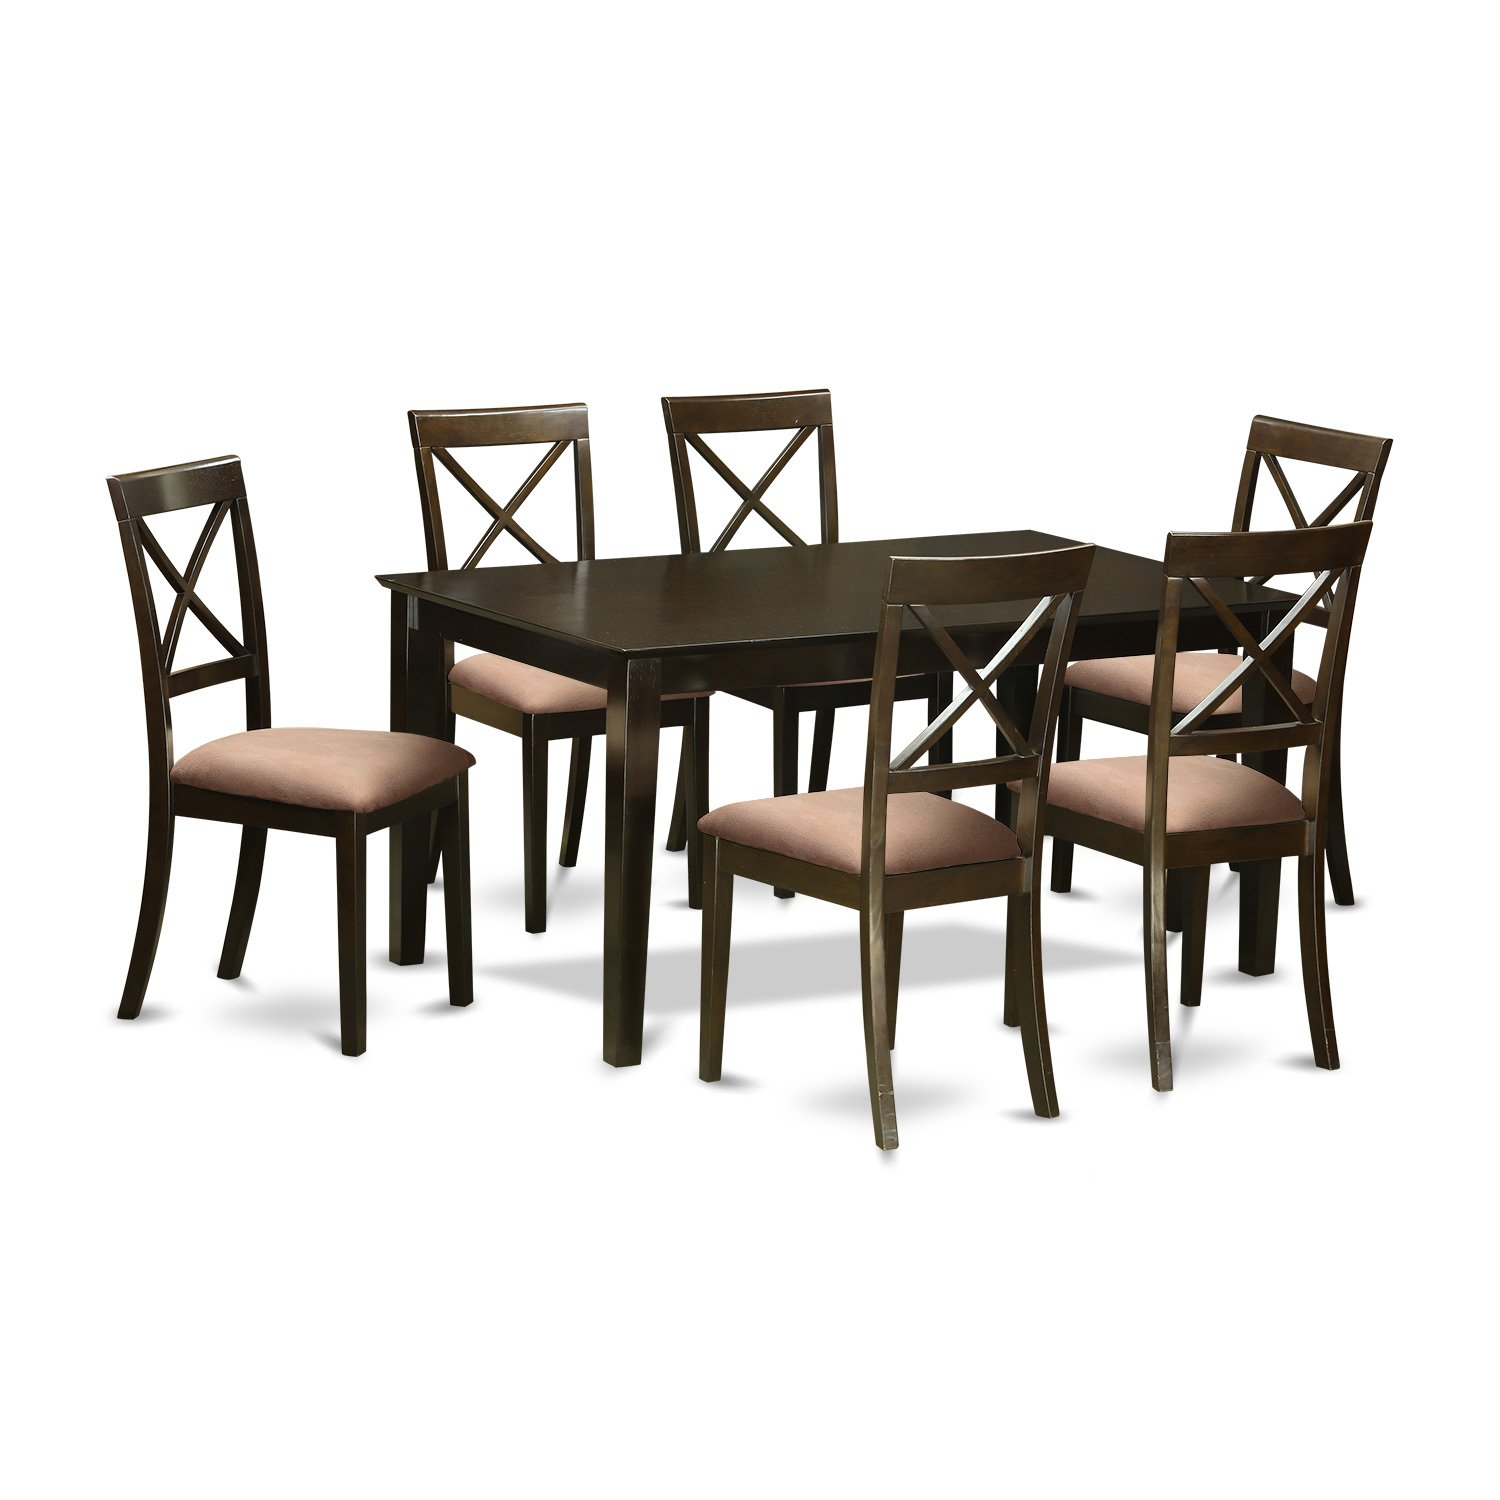 CABO7S-CAP-C 7 Pc Dining set-Dining Table and 6 Microfiber Dining Chairs